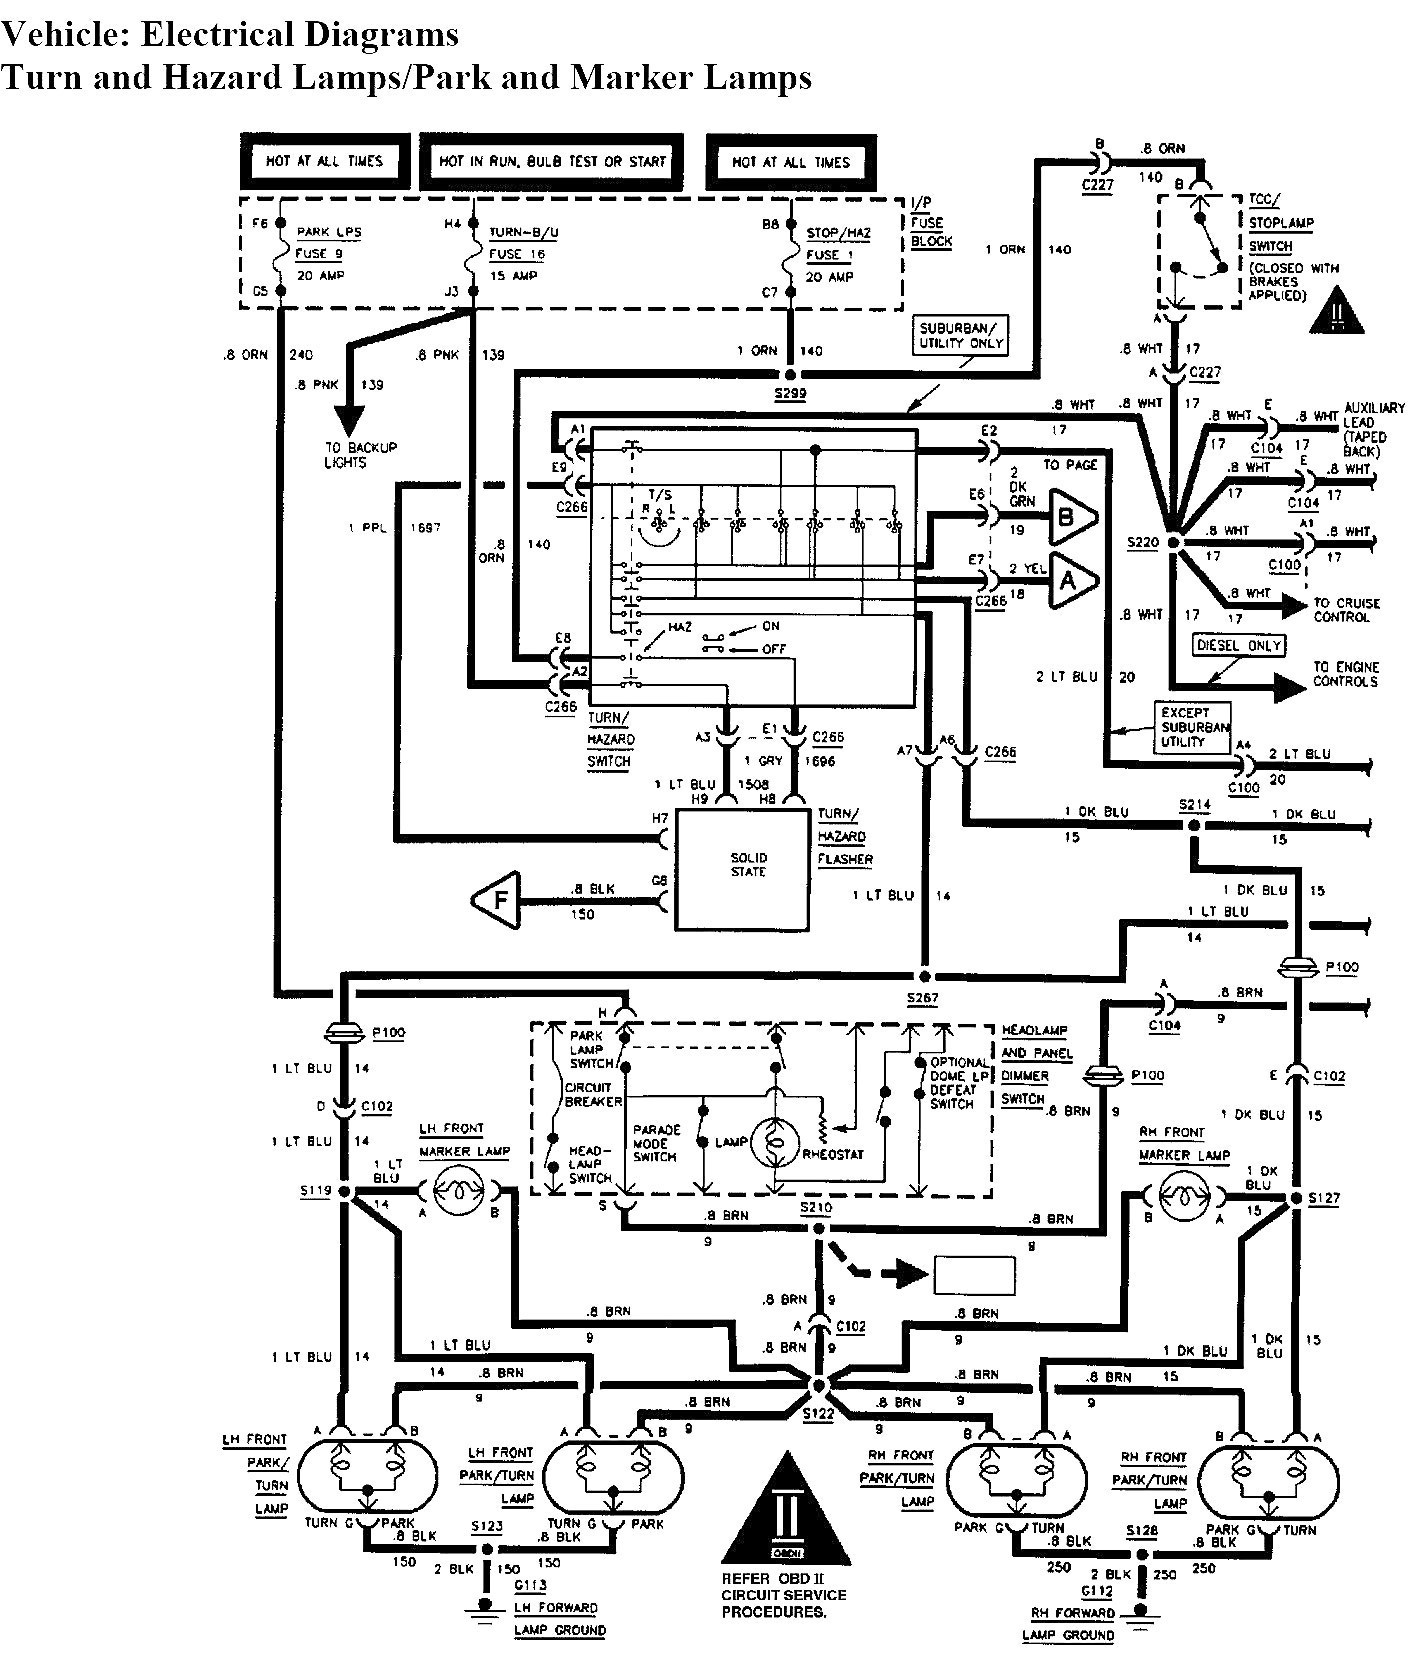 1988 Chevy S10 Wiring Harness List Of Schematic Circuit Diagram Wire Tail Light Pickup Free Download U2022 Oasis Rh Dl Co 1989